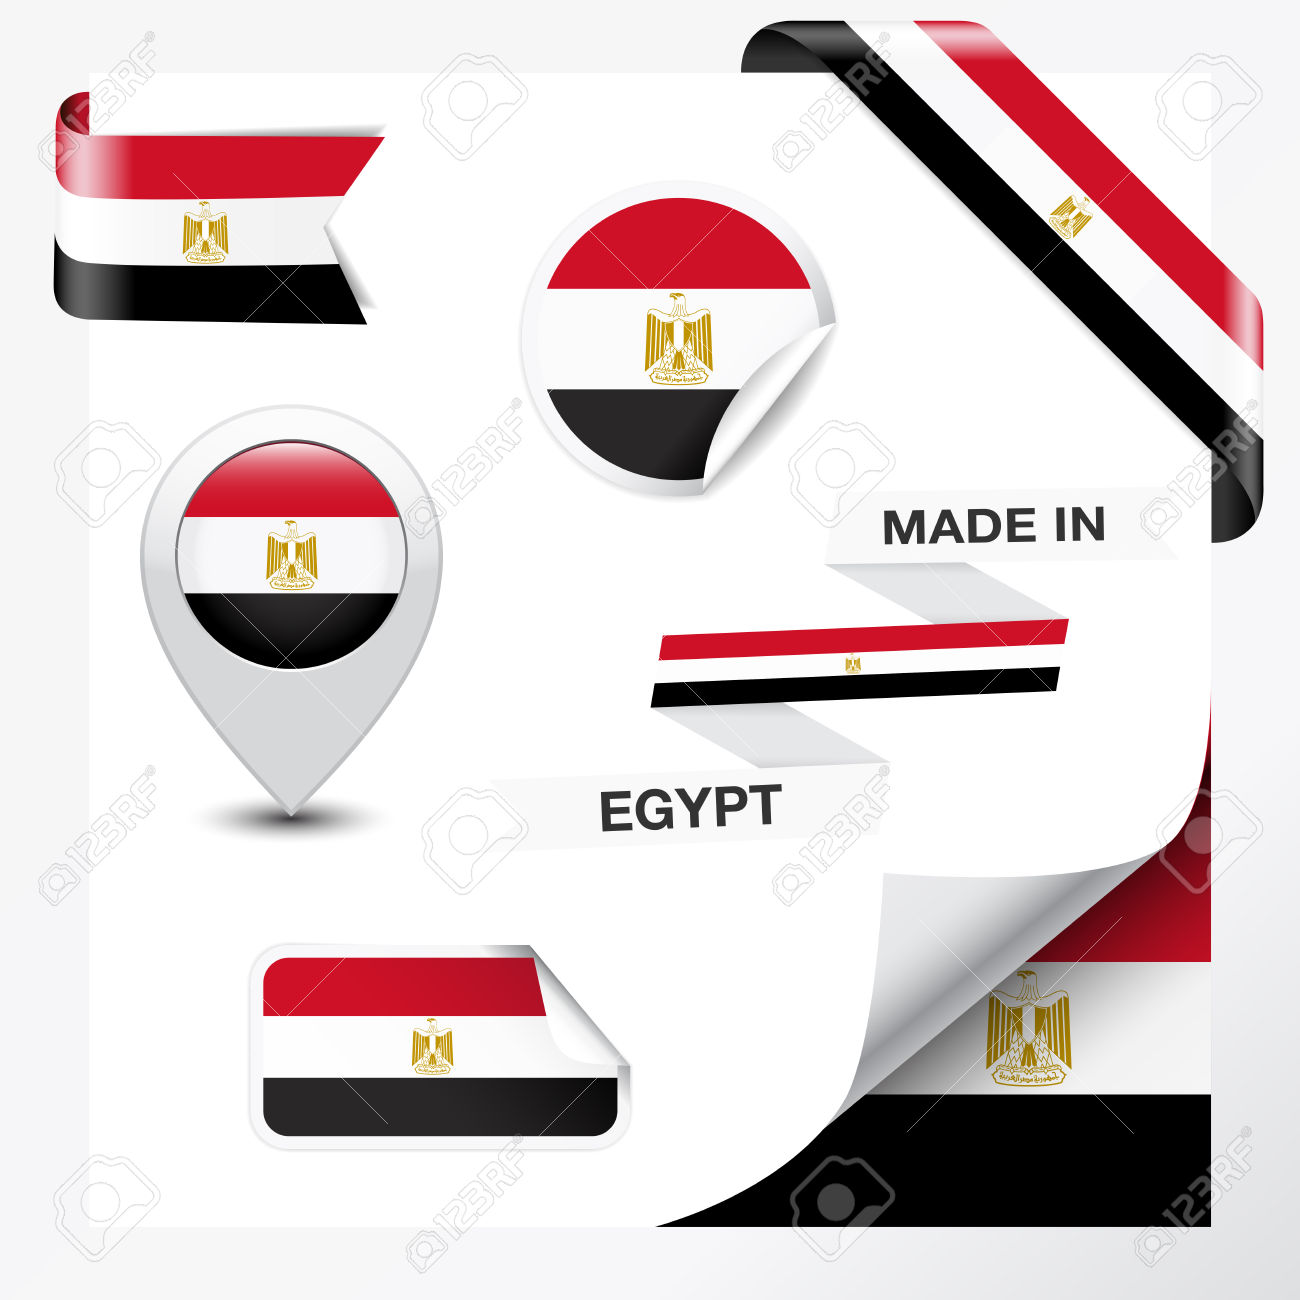 26592255-Made-in-Egypt-collection-of-ribbon-label-stickers-pointer-badge-icon-and-page-curl-with-Egyptian-fla-Stock-Vector